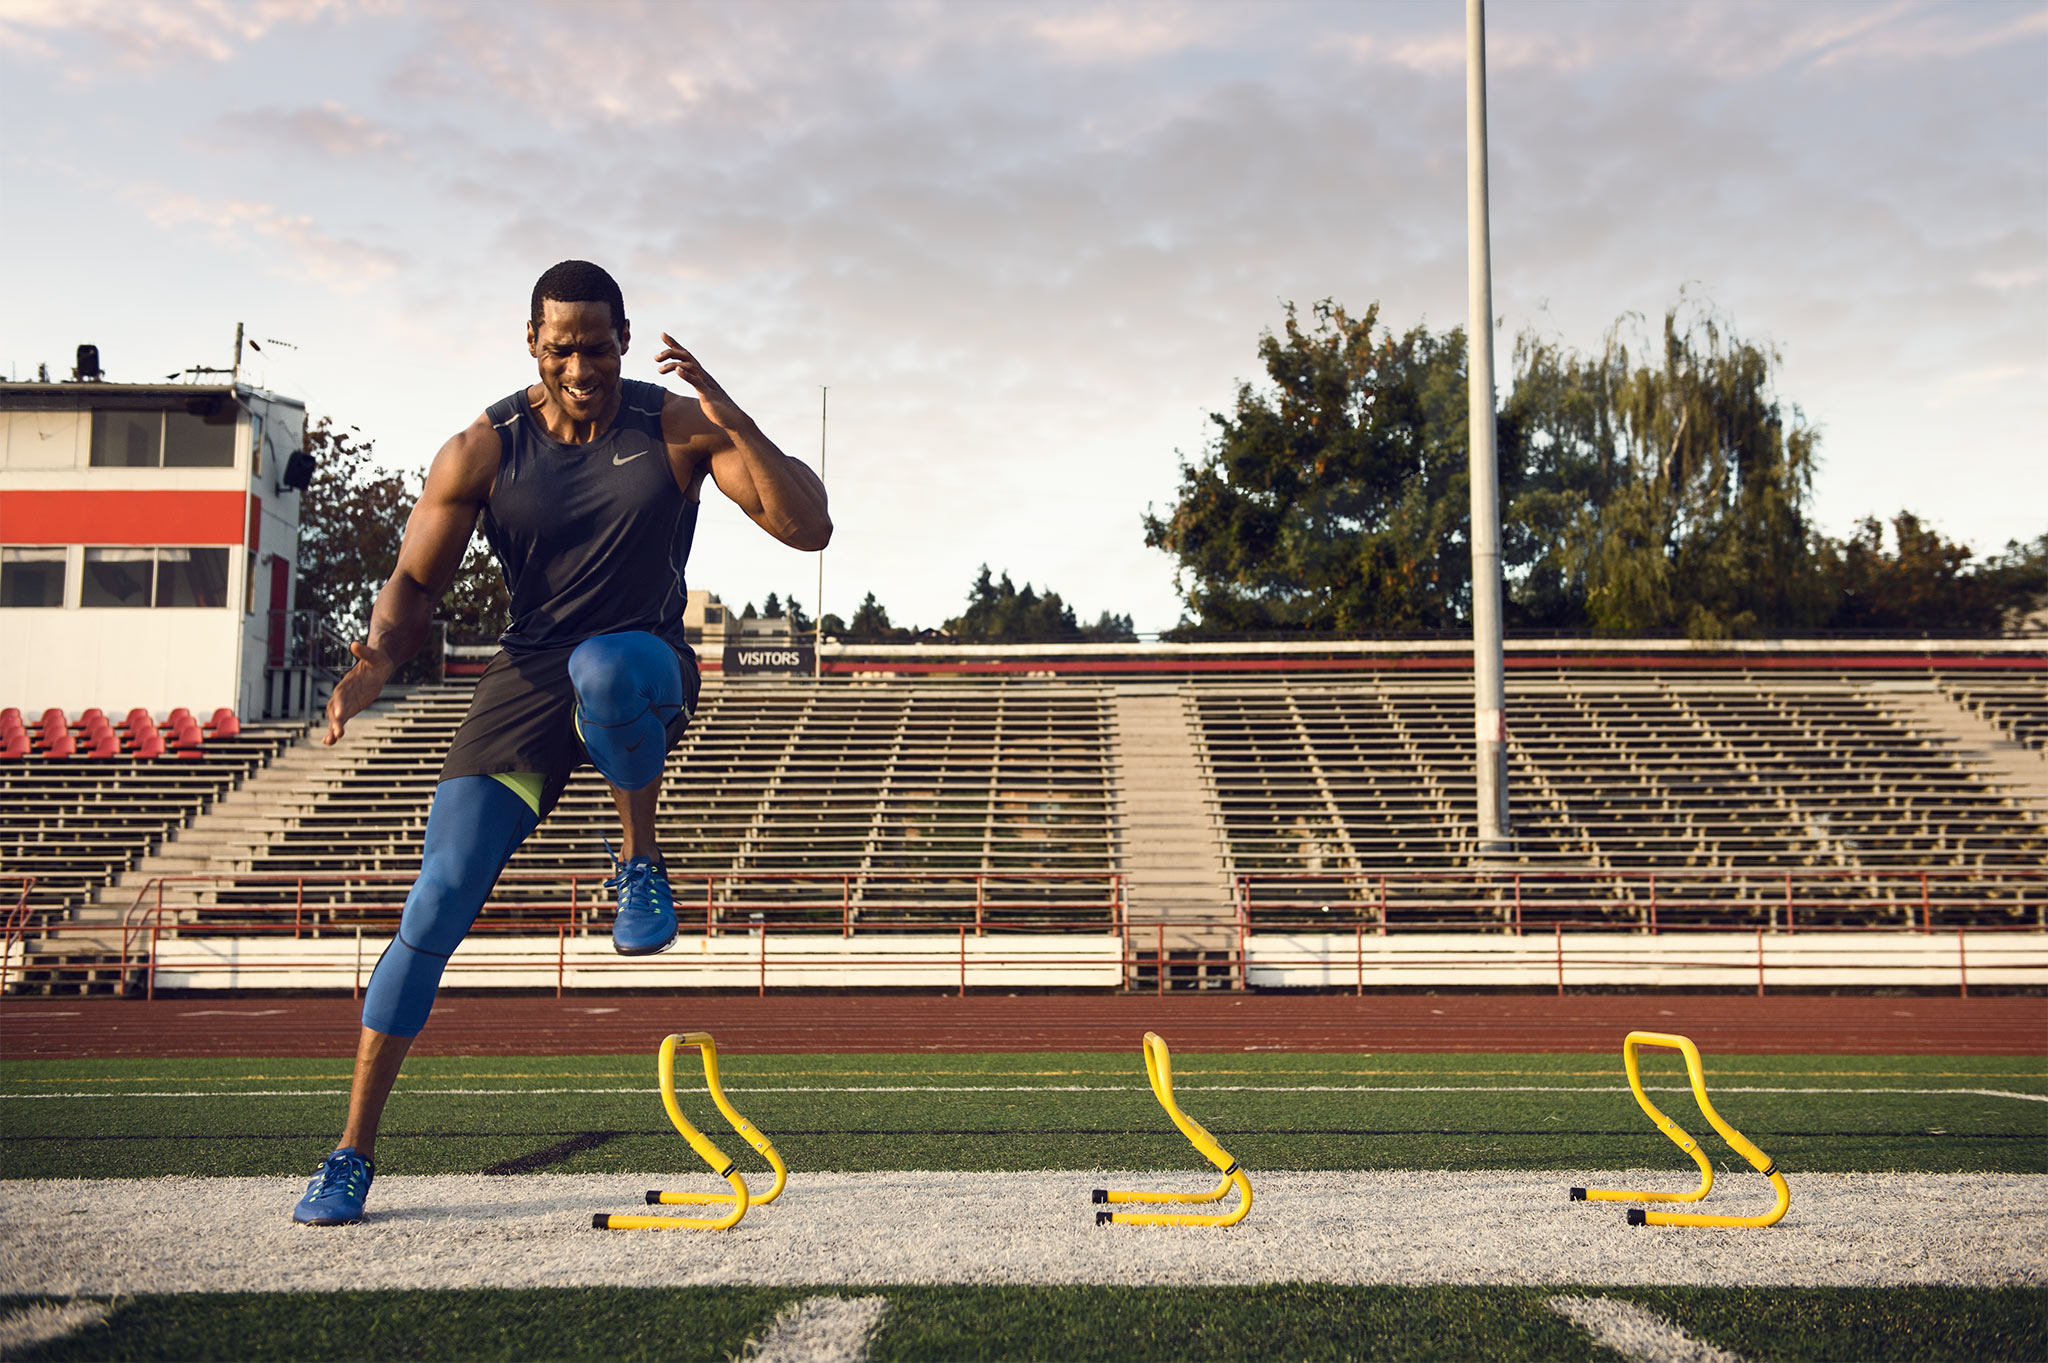 Male Trainer Demonstrates Speed Hurdles | Zach Ancell Photography